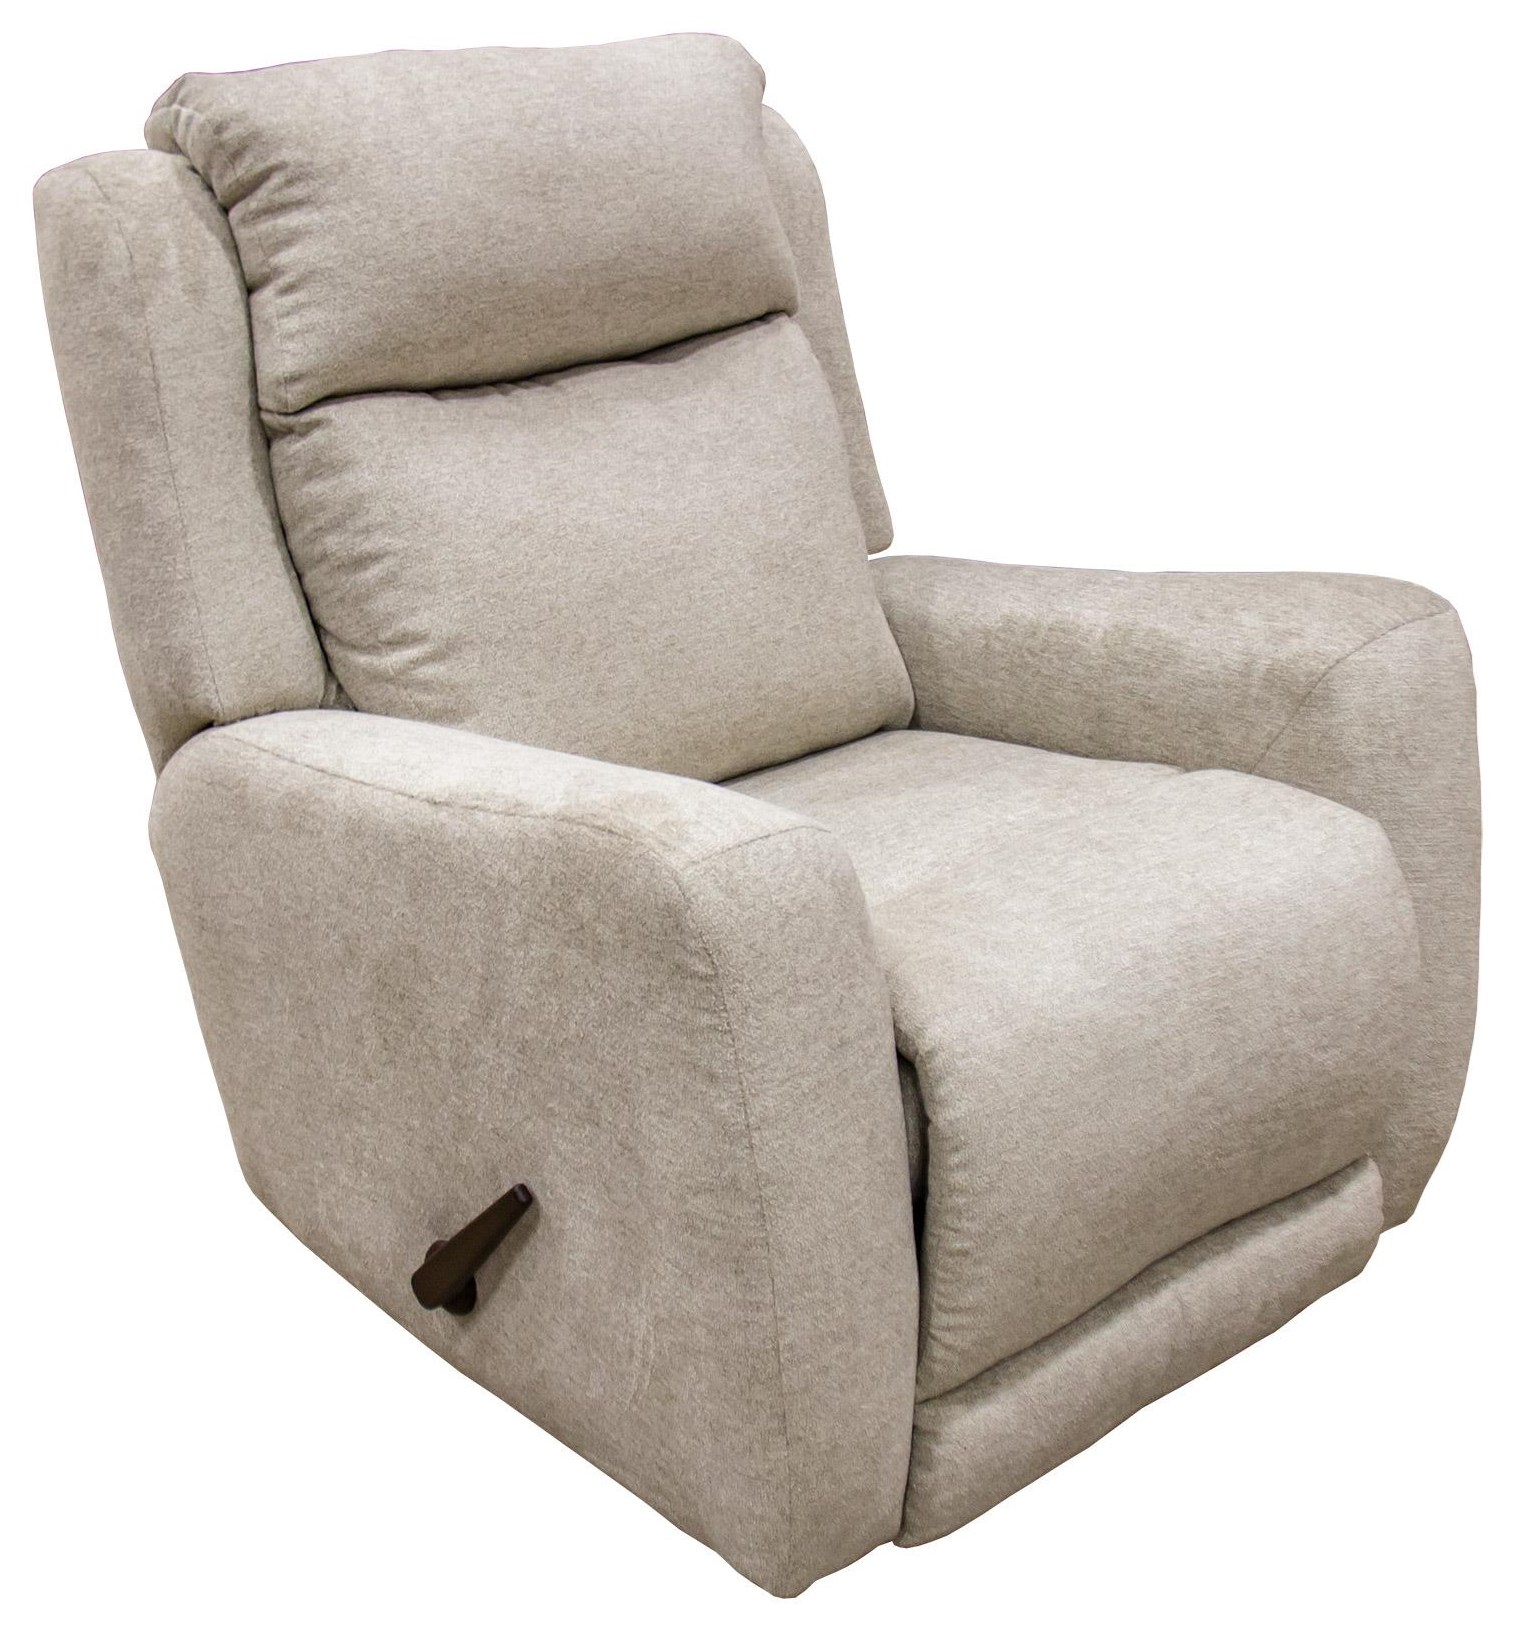 Beige Rocker Recliner